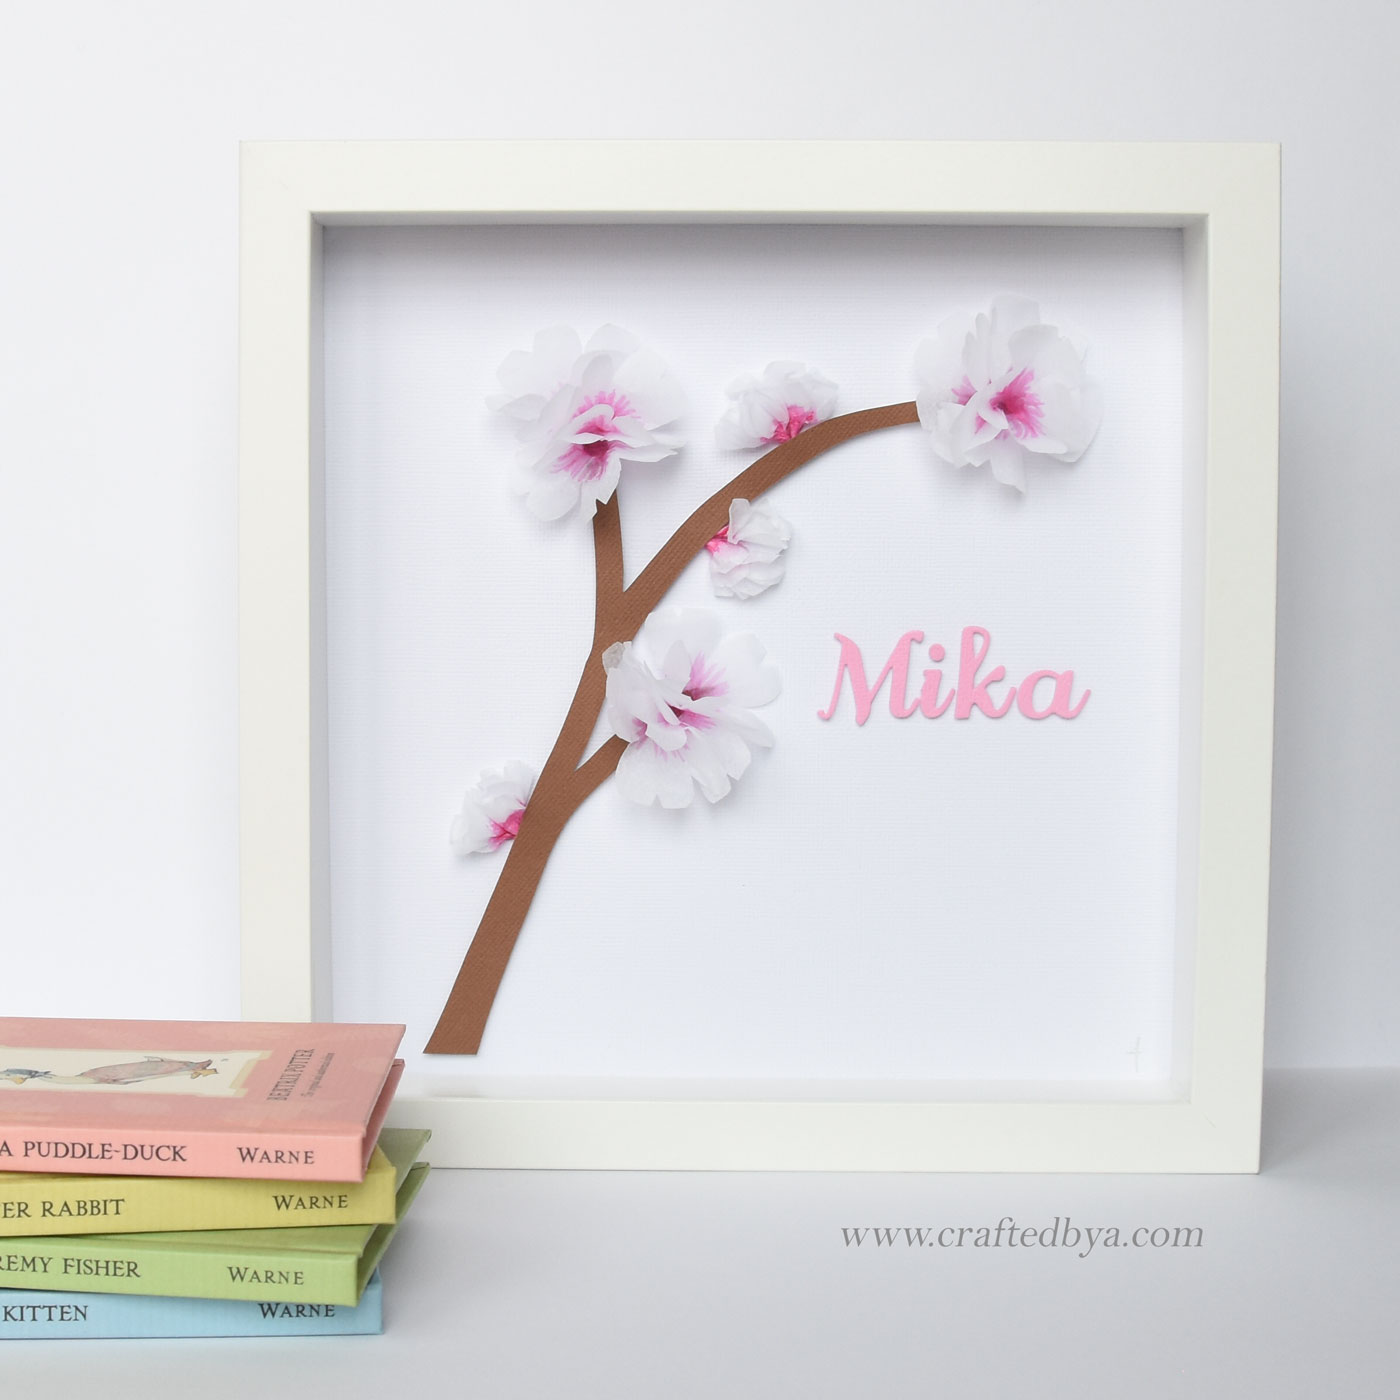 Cherry-blossoms - Mika.jpg